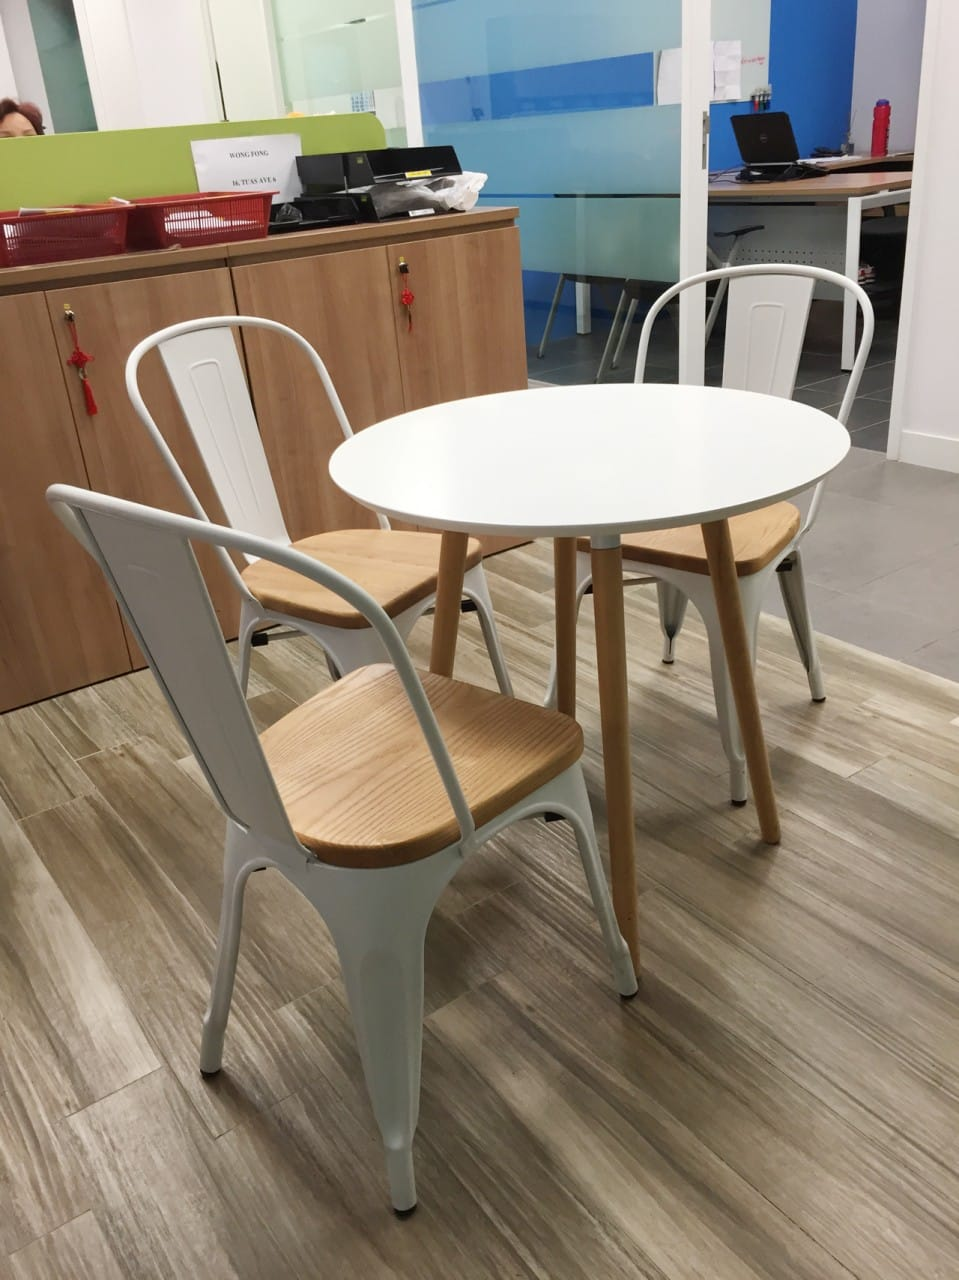 Wong Fong Engineering Works Pte Ltd - 79 Joo Koon Circle | Product Seen: [Dojo Sidechair – Wood Seat & Attract Dining Table - Round 700]<br />